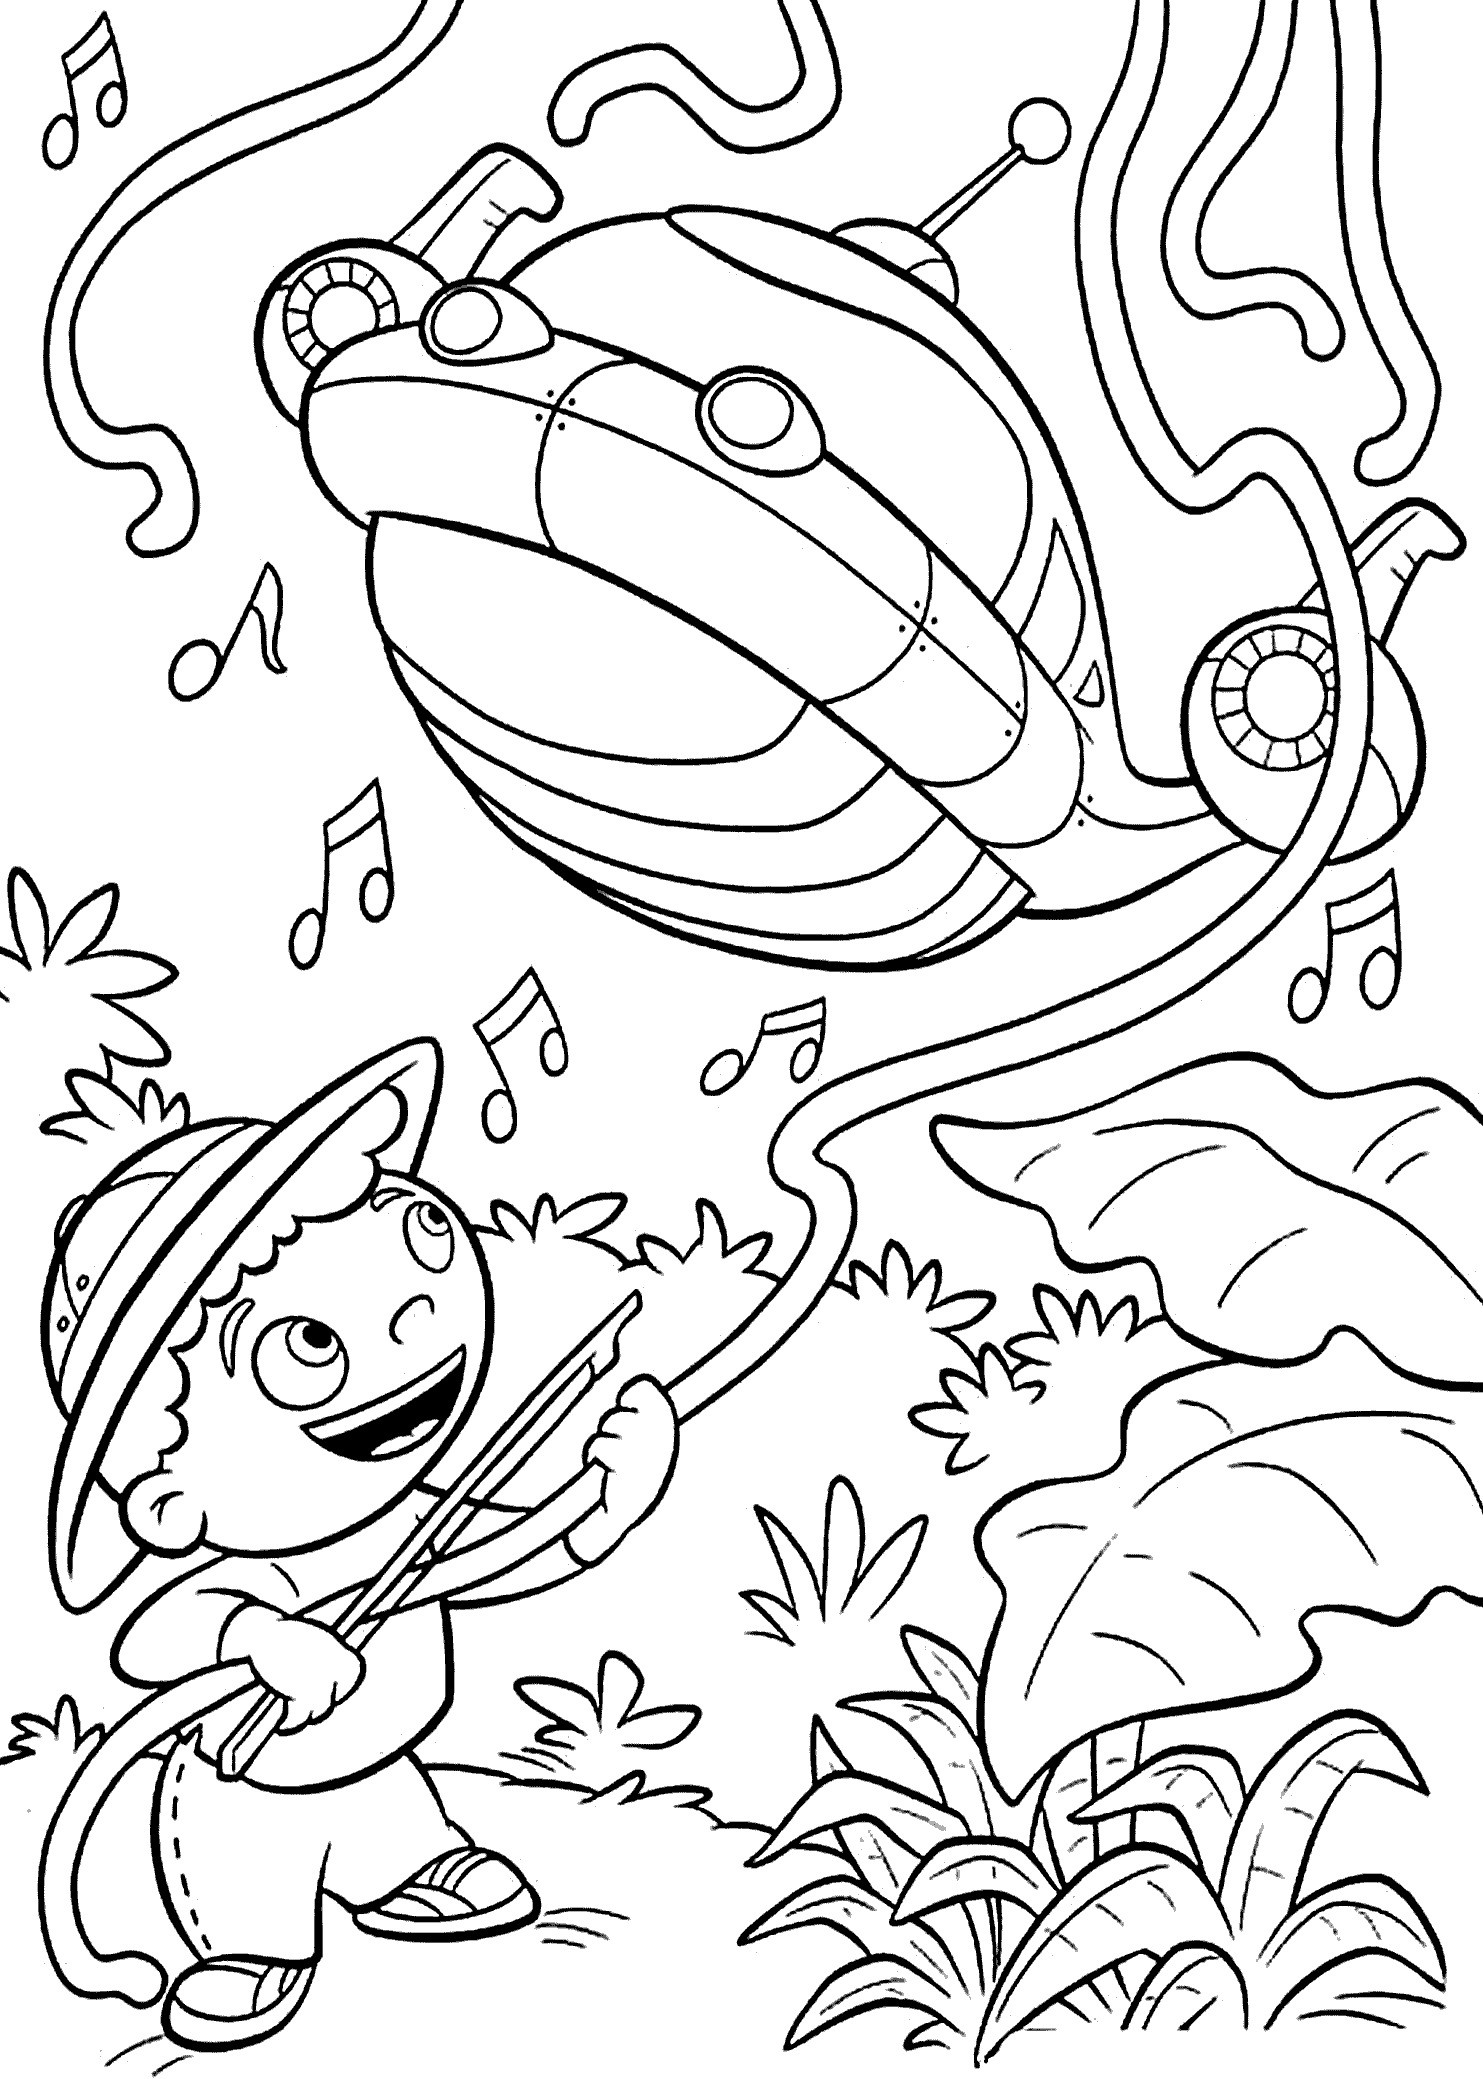 Spinnennetz Mit Spinne Malvorlage Neu Little Einsteins Cartoon Coloring Pages for Kids Printable Free Fotos